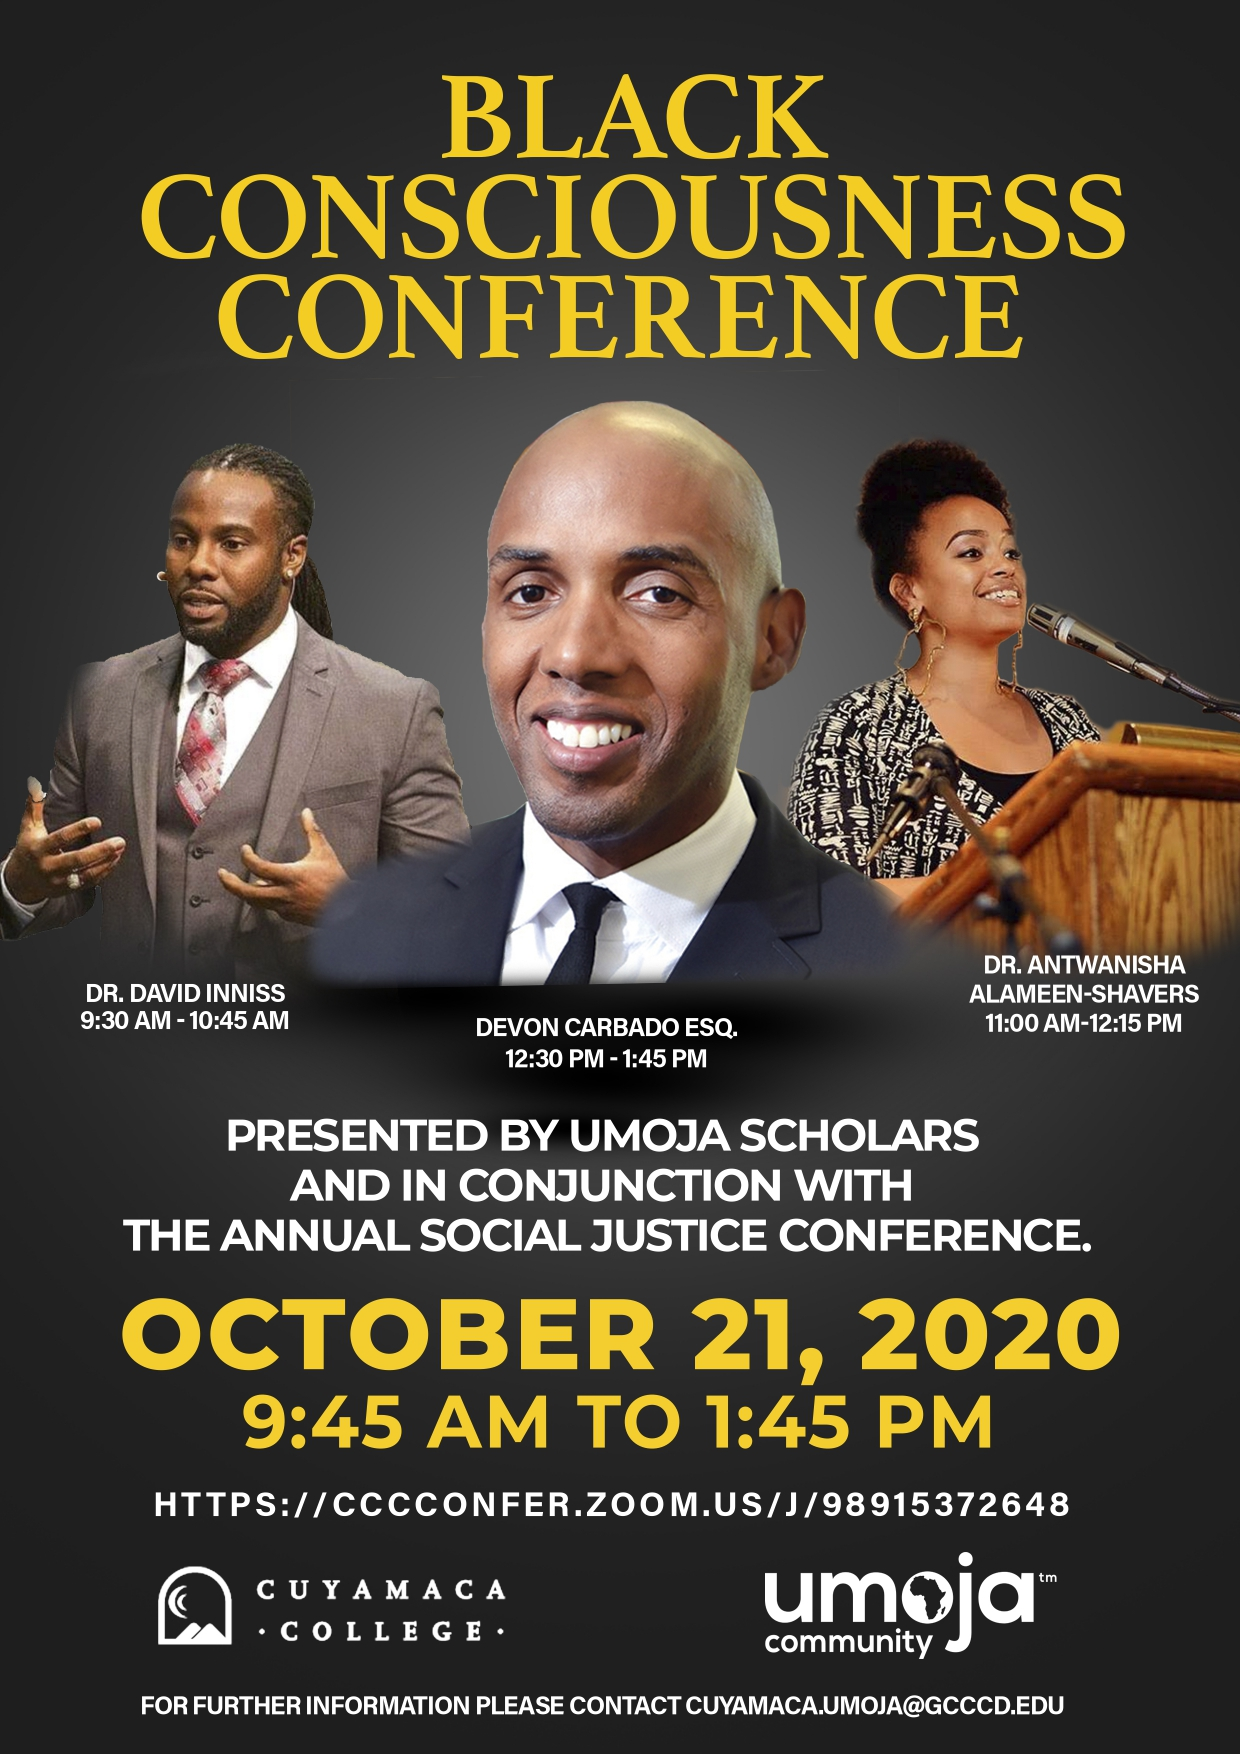 Black Consciousness Conference